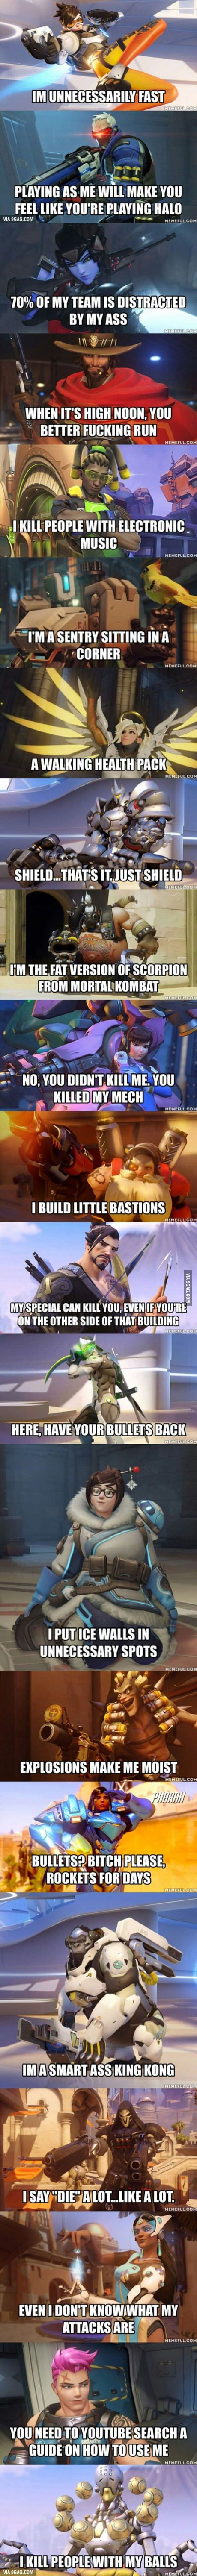 Just Overwatch                                                                                                                                                      More